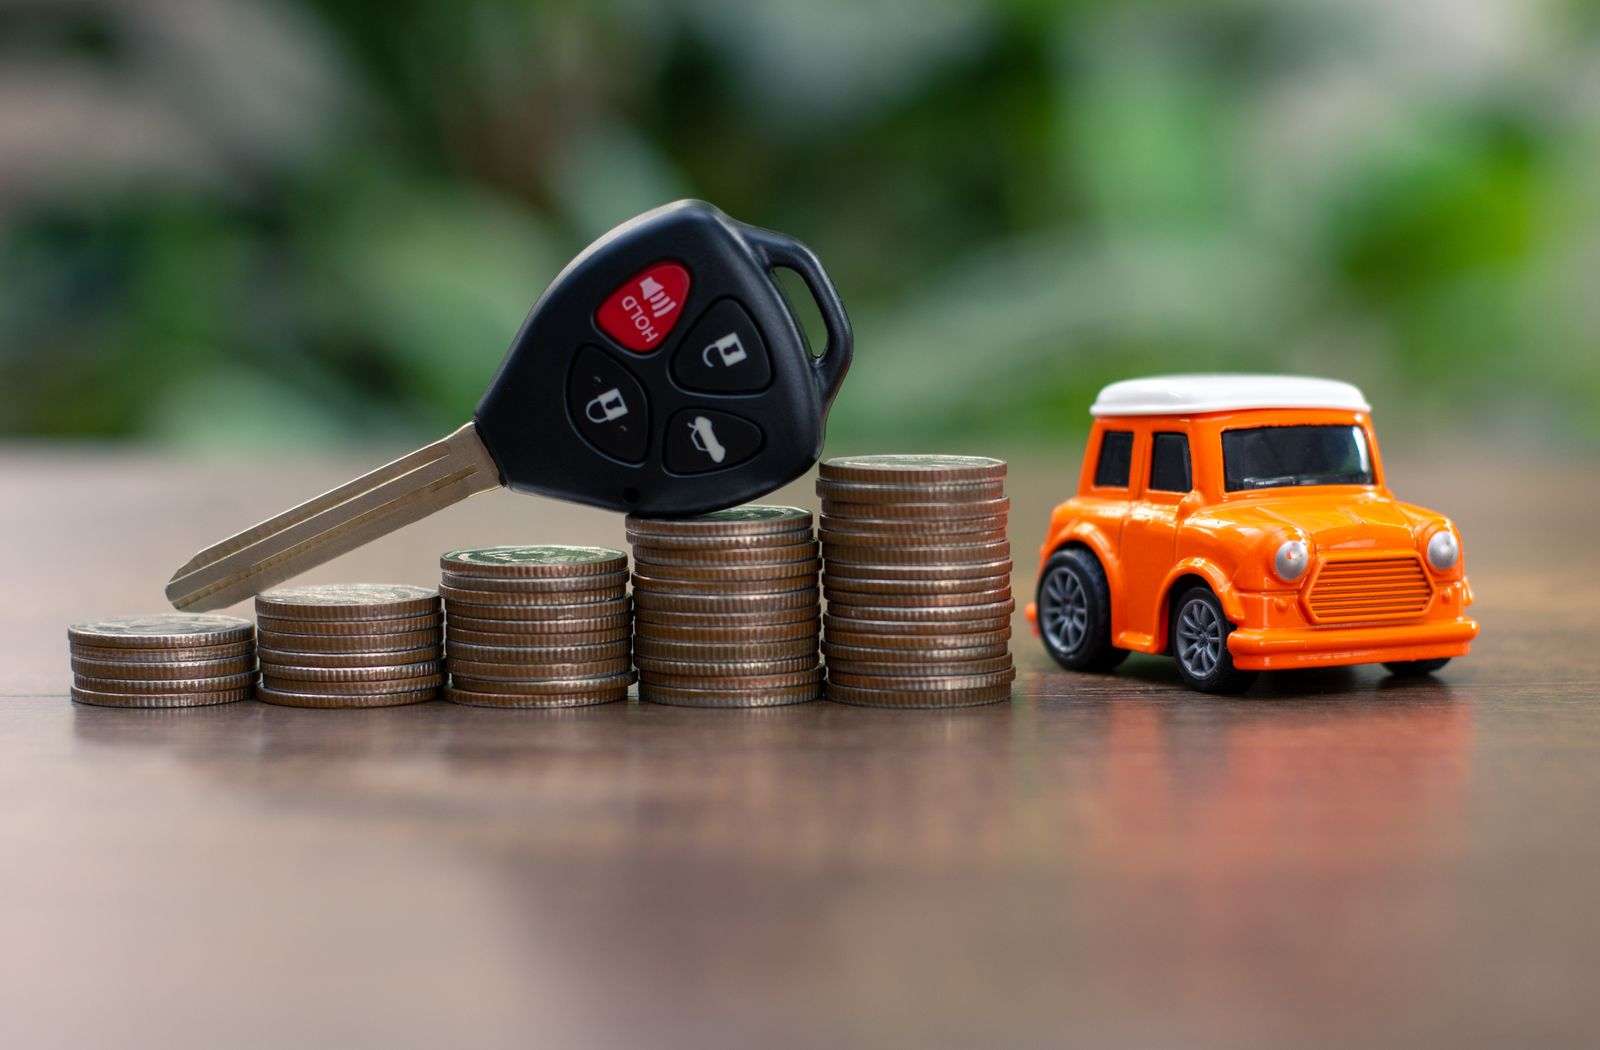 Car key on money coin with car model on table, Sell and Buy car concept.